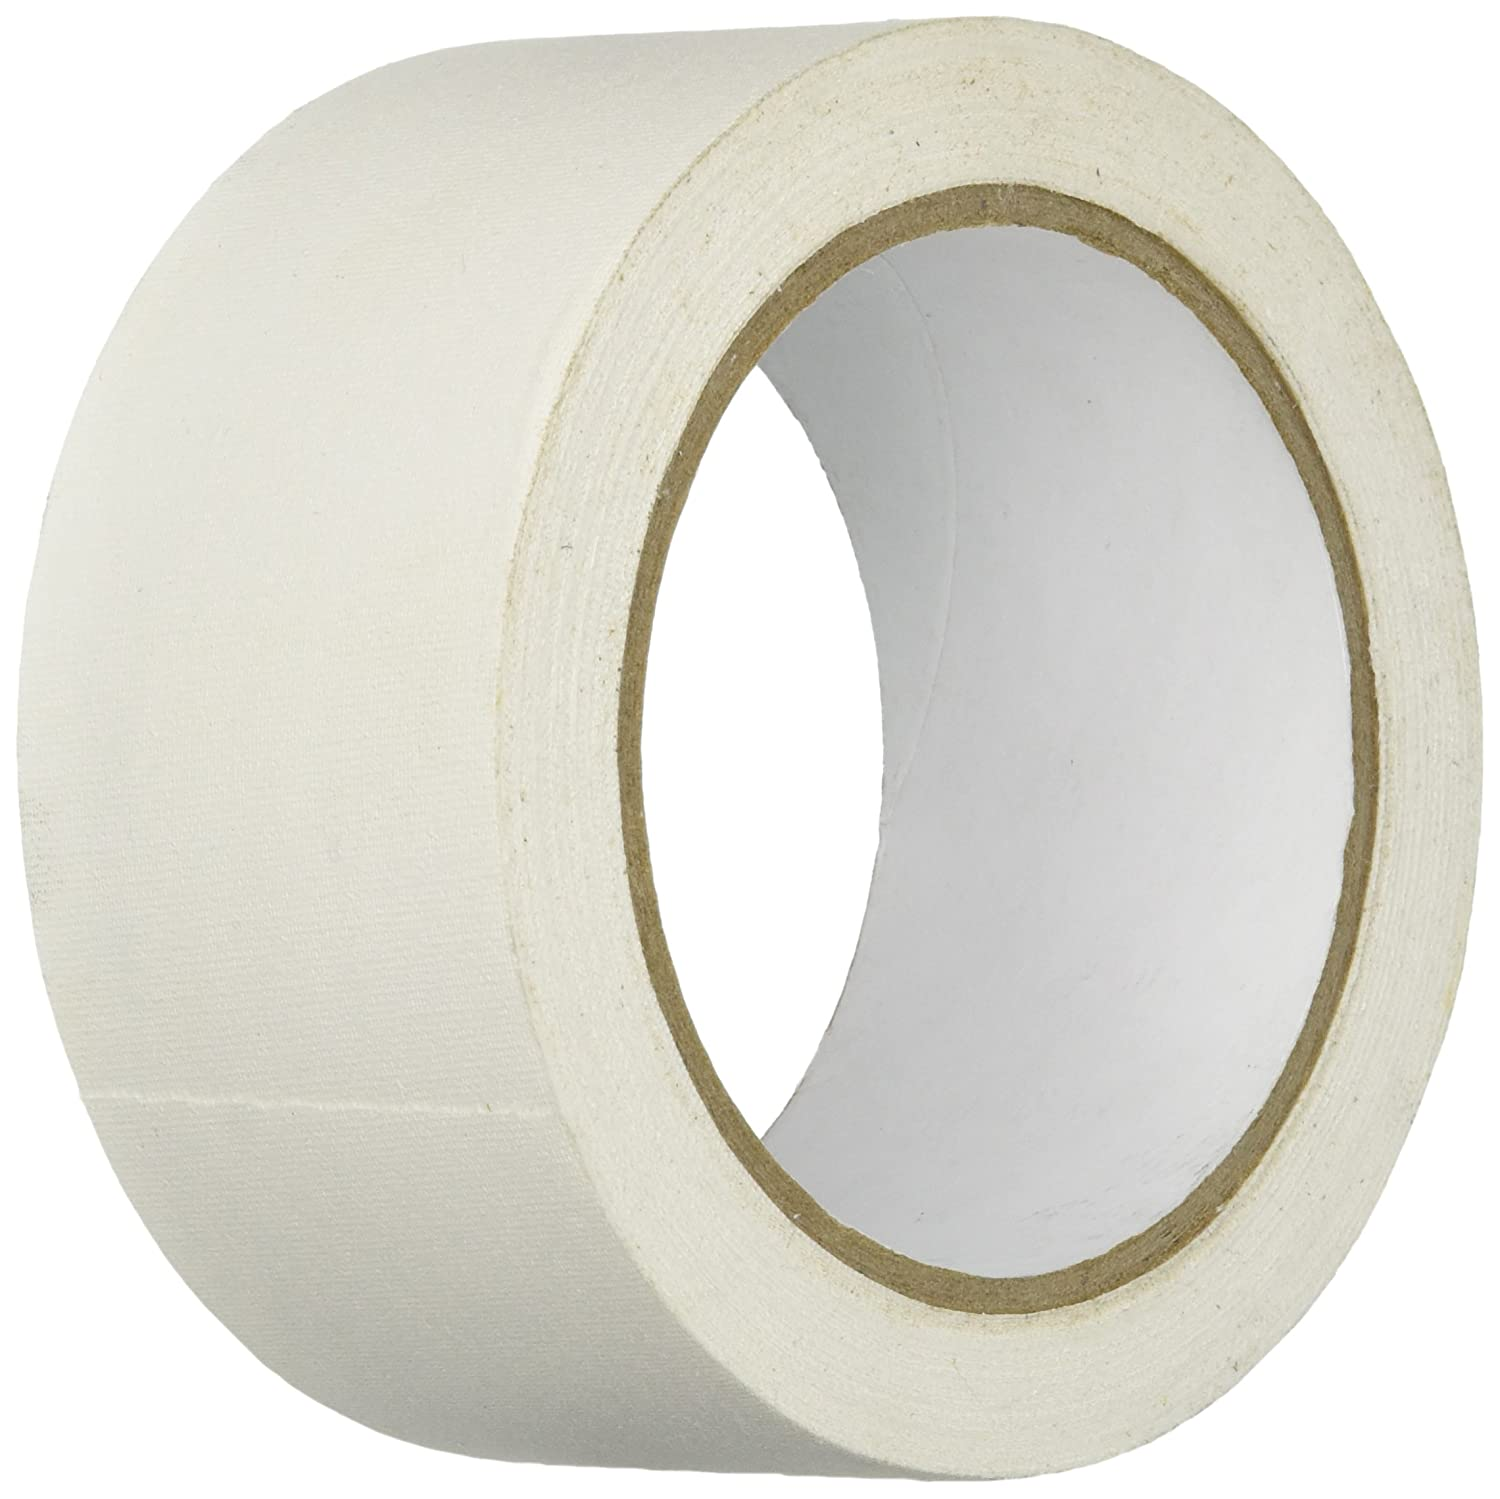 Book Repair Tape- 2 Inch Wide Self Adhesive White Lineco 550-1506